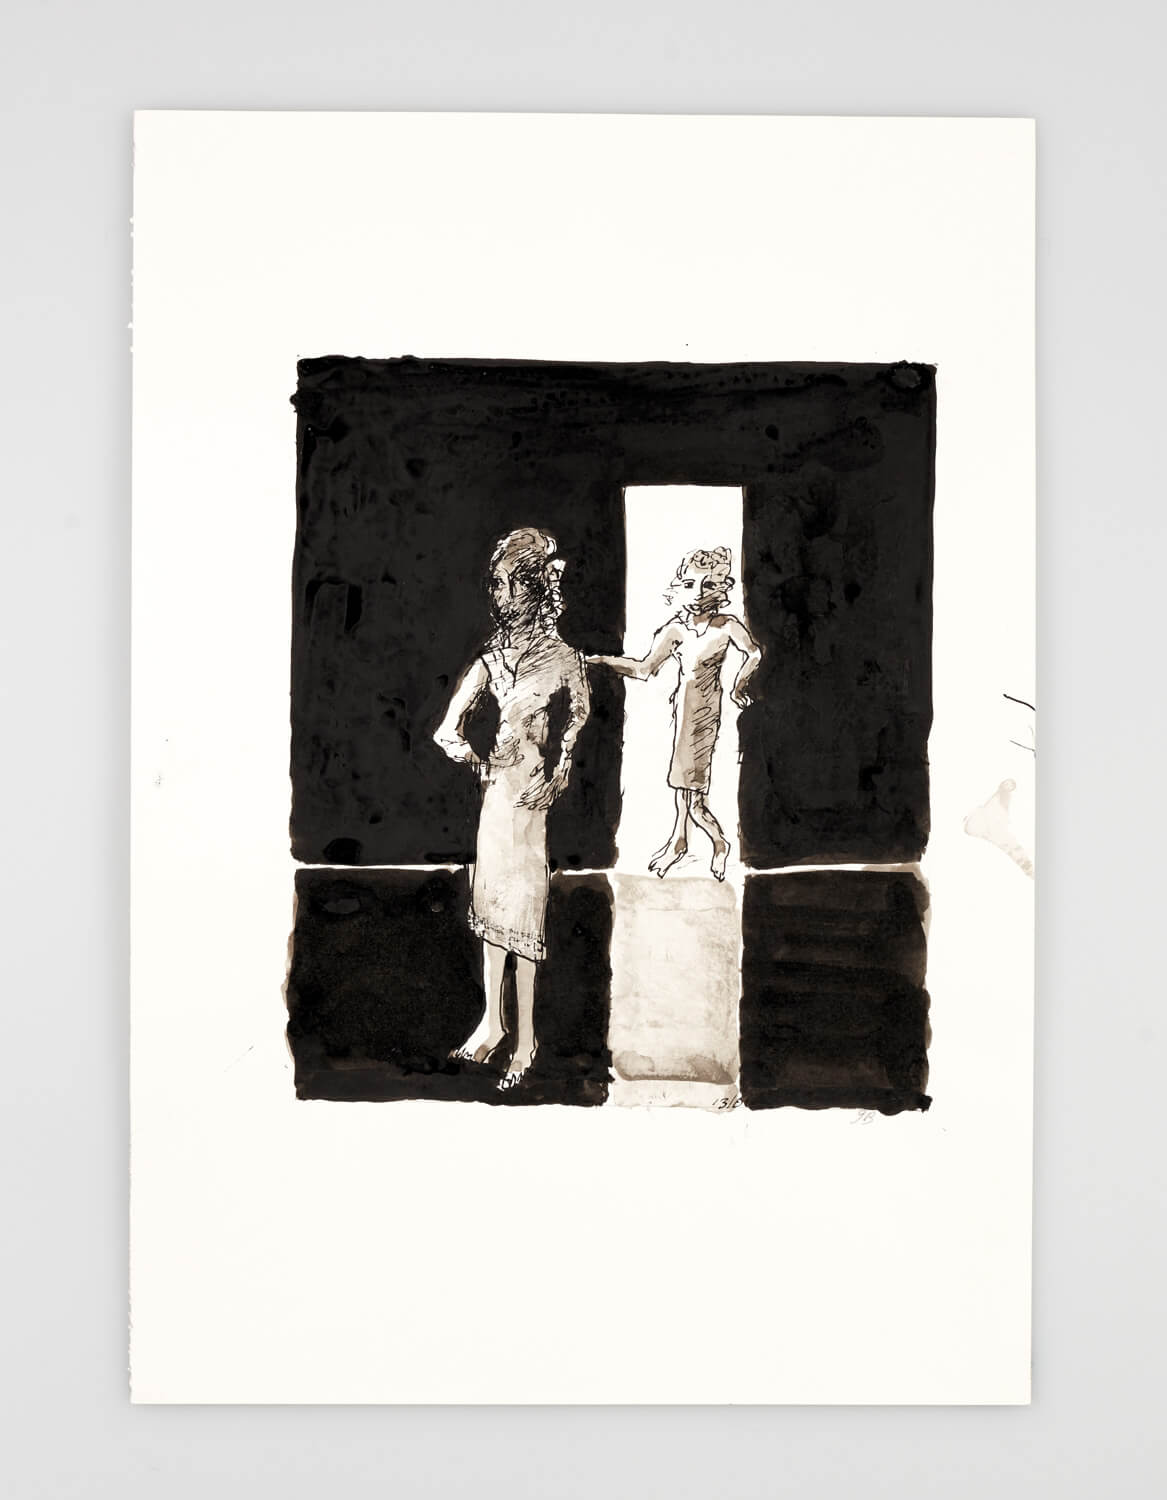 JB006 - Two Women Dressing - 2001 - 50 x 35 cm - Indian ink and wash on paper